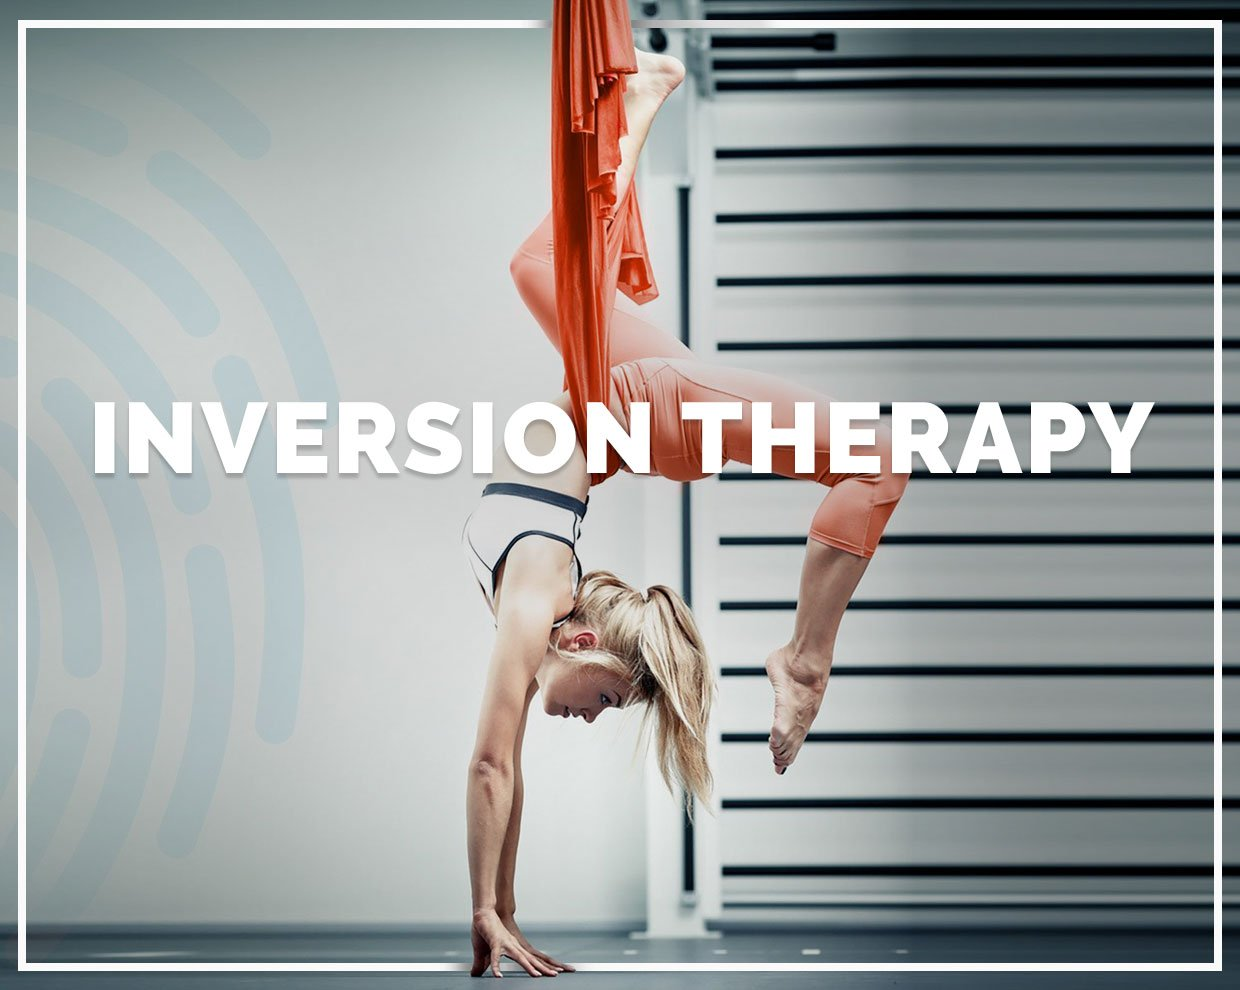 What you need to know about inversion therapy